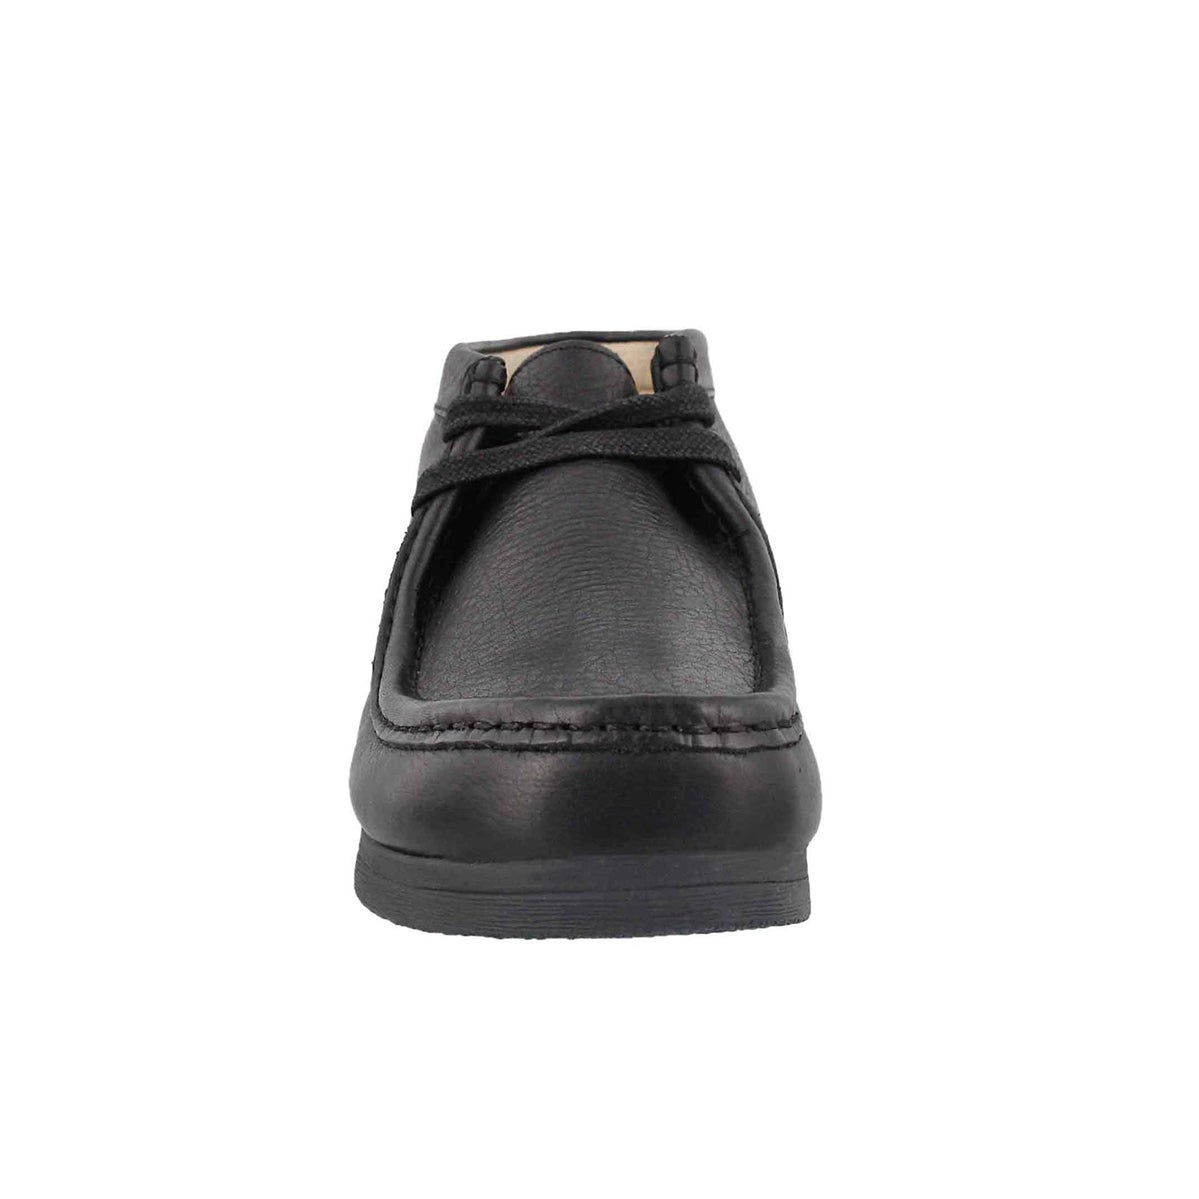 Mns Stinson Hi black casual shoe